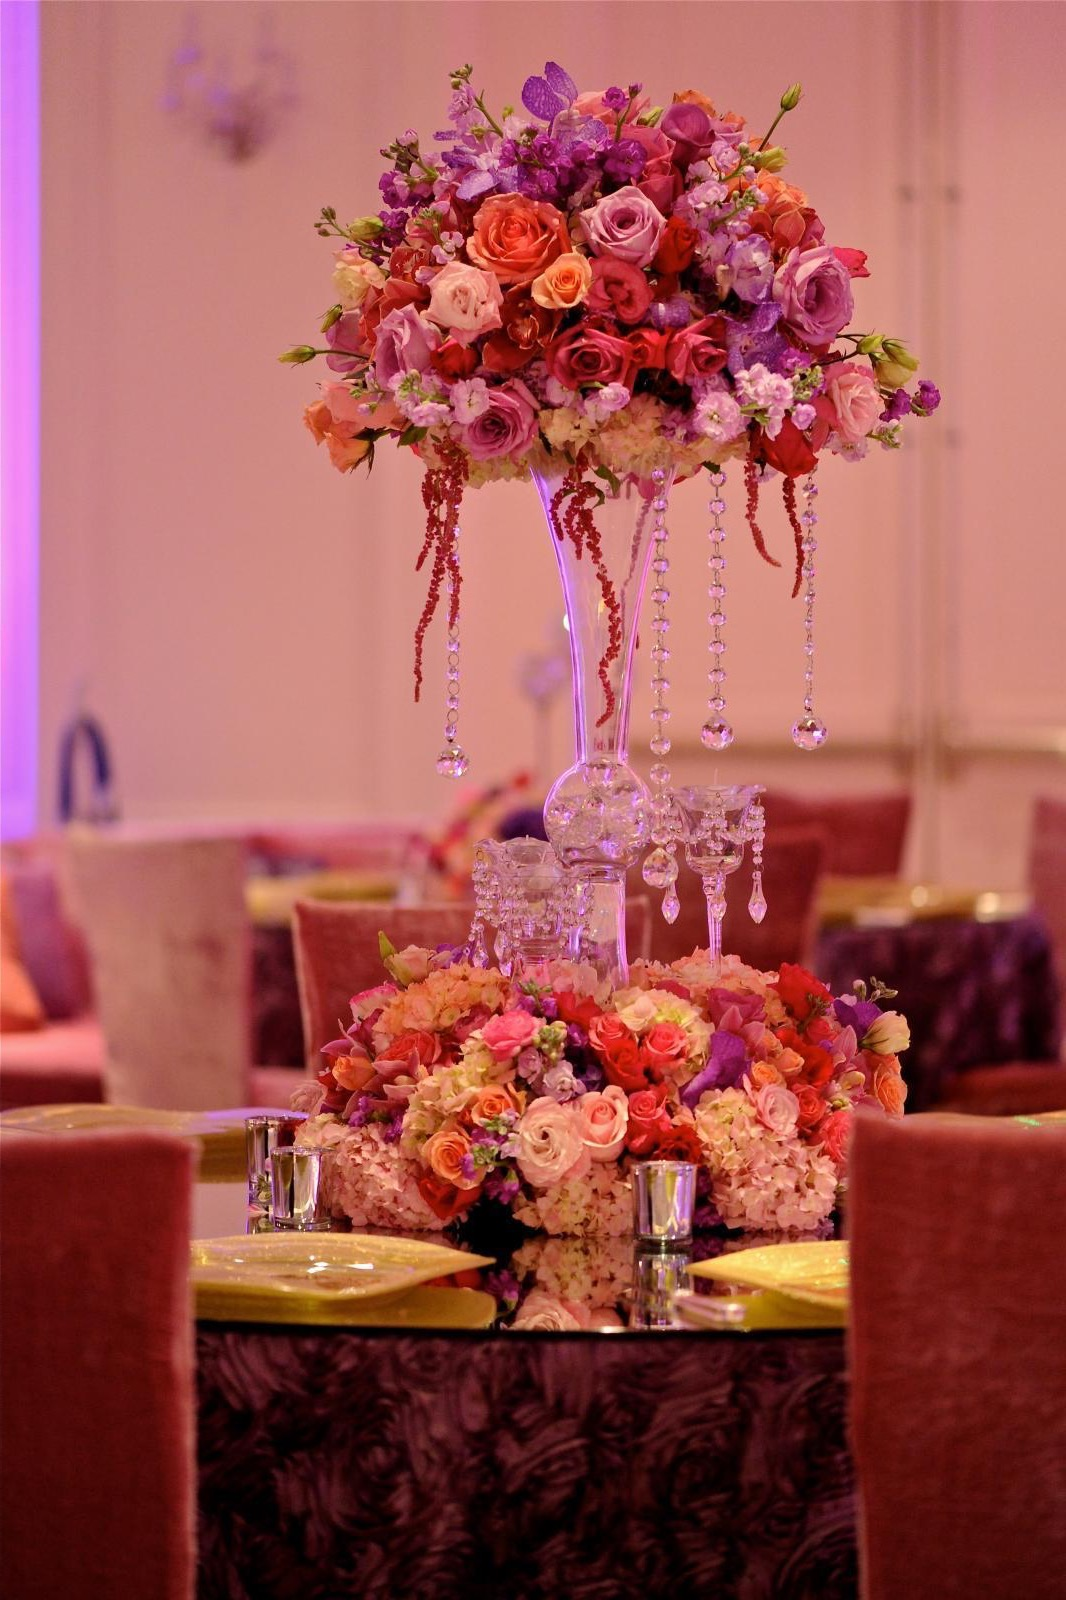 Deluxe Purple Rose Flower Arrangements With Crystals Centerpieces For Ballroom Wedding (Image 8 of 30)